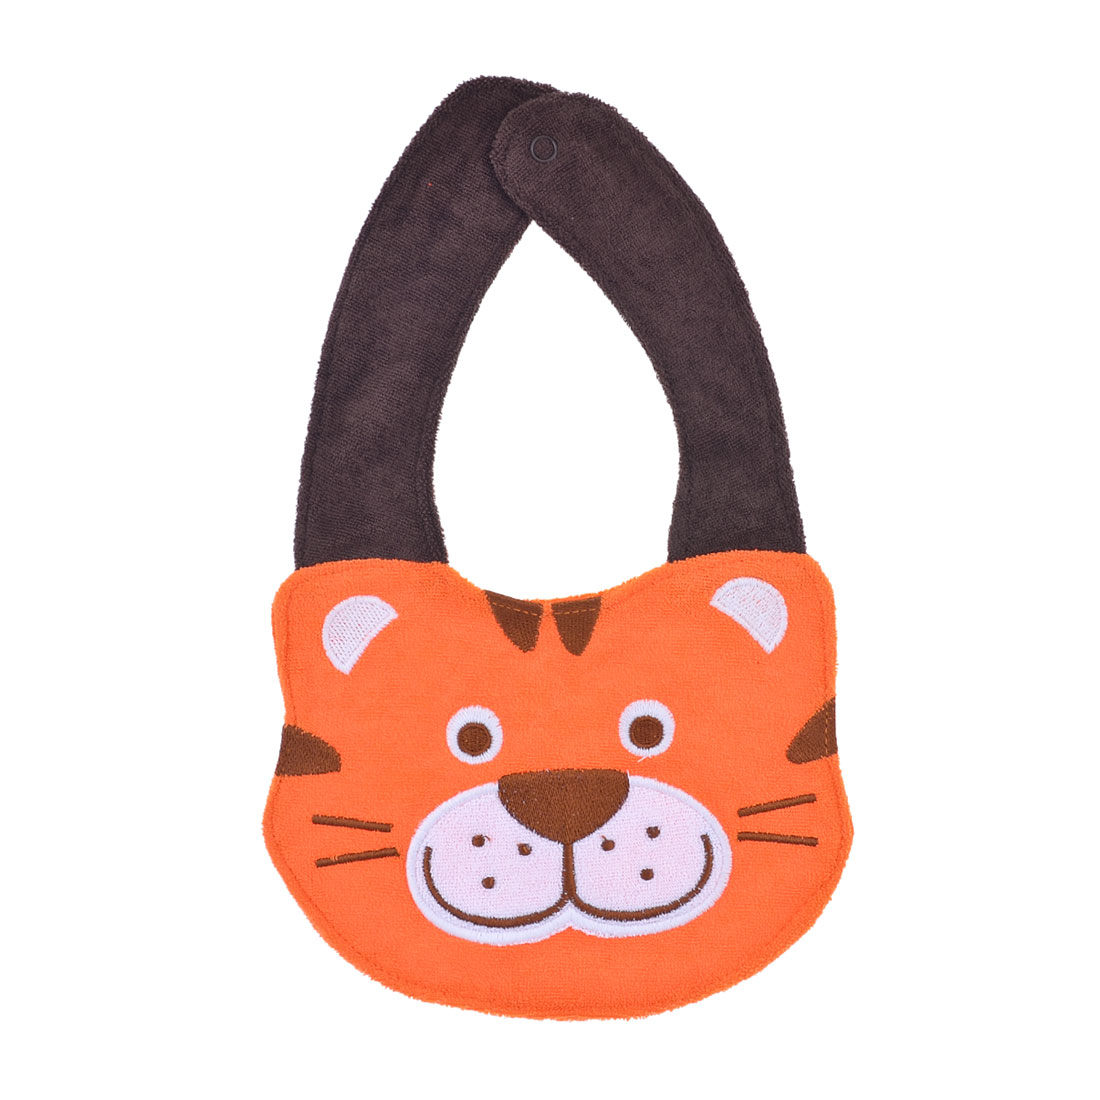 Infant Toddler Brown Orange Tiger Design Terry Lunch Bib Tower